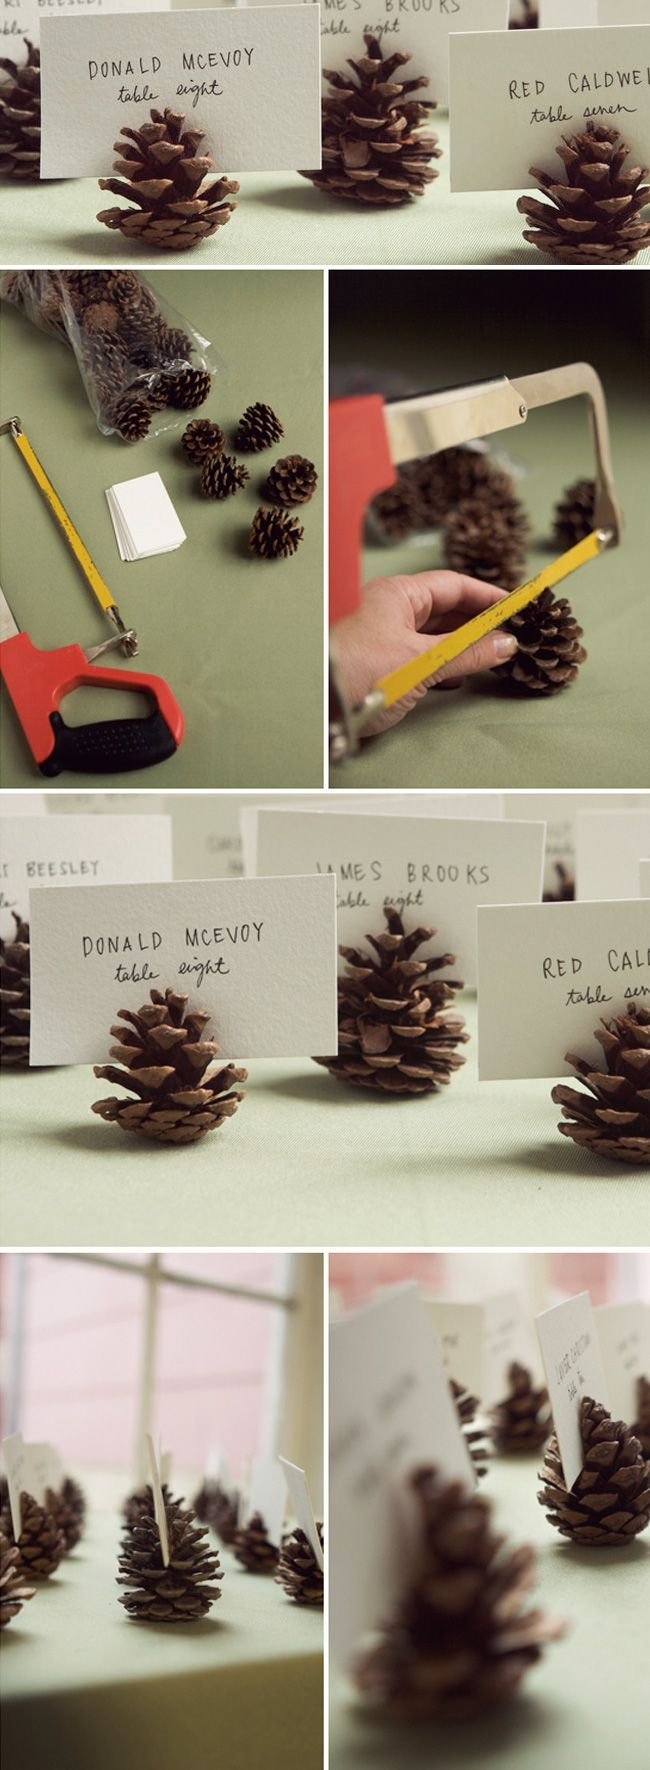 diy wedding ideas pinecone seating card holders 17 Ways To Achieve The Perfect Cheap Ass Fall Wedding